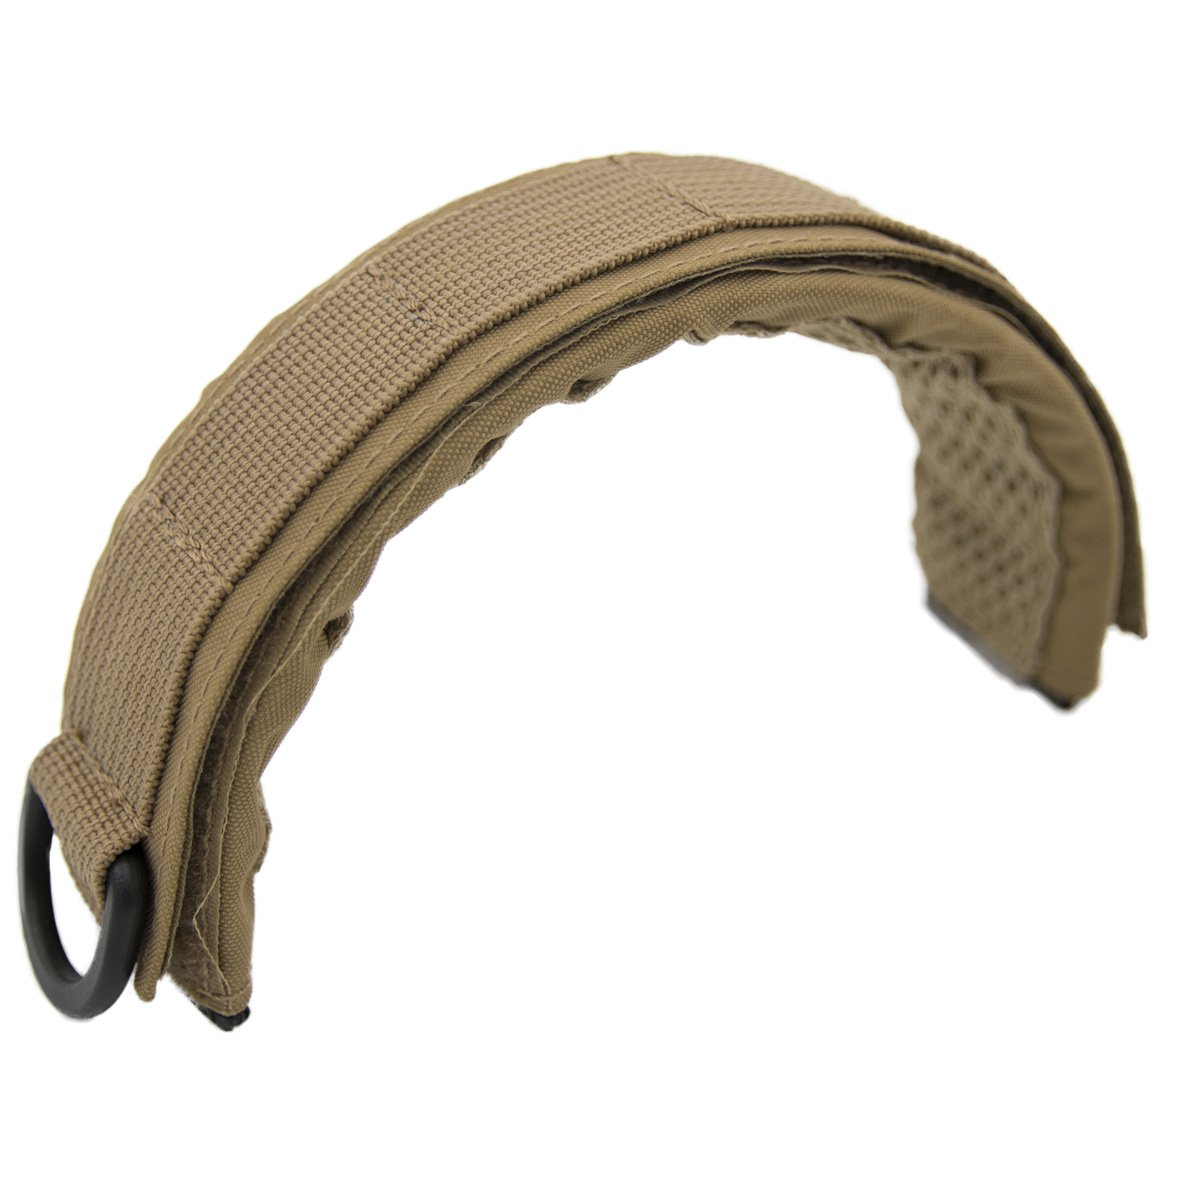 OPSMEN Headband Advanced Modular Headset Cover Fit For All General Tactical Earmuffs Accessories Upgrade Bags Case Desert(TN) by OPSMEN